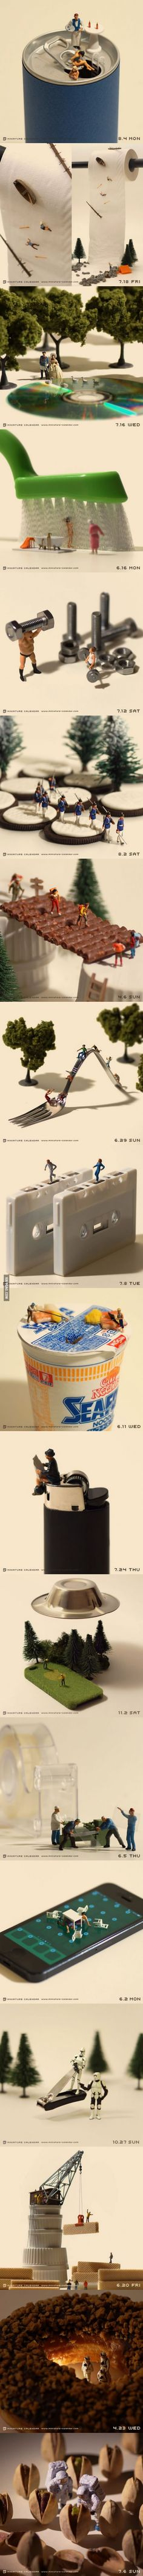 Tanaka Tatsuya combined little people and everyday objects to create an art like…